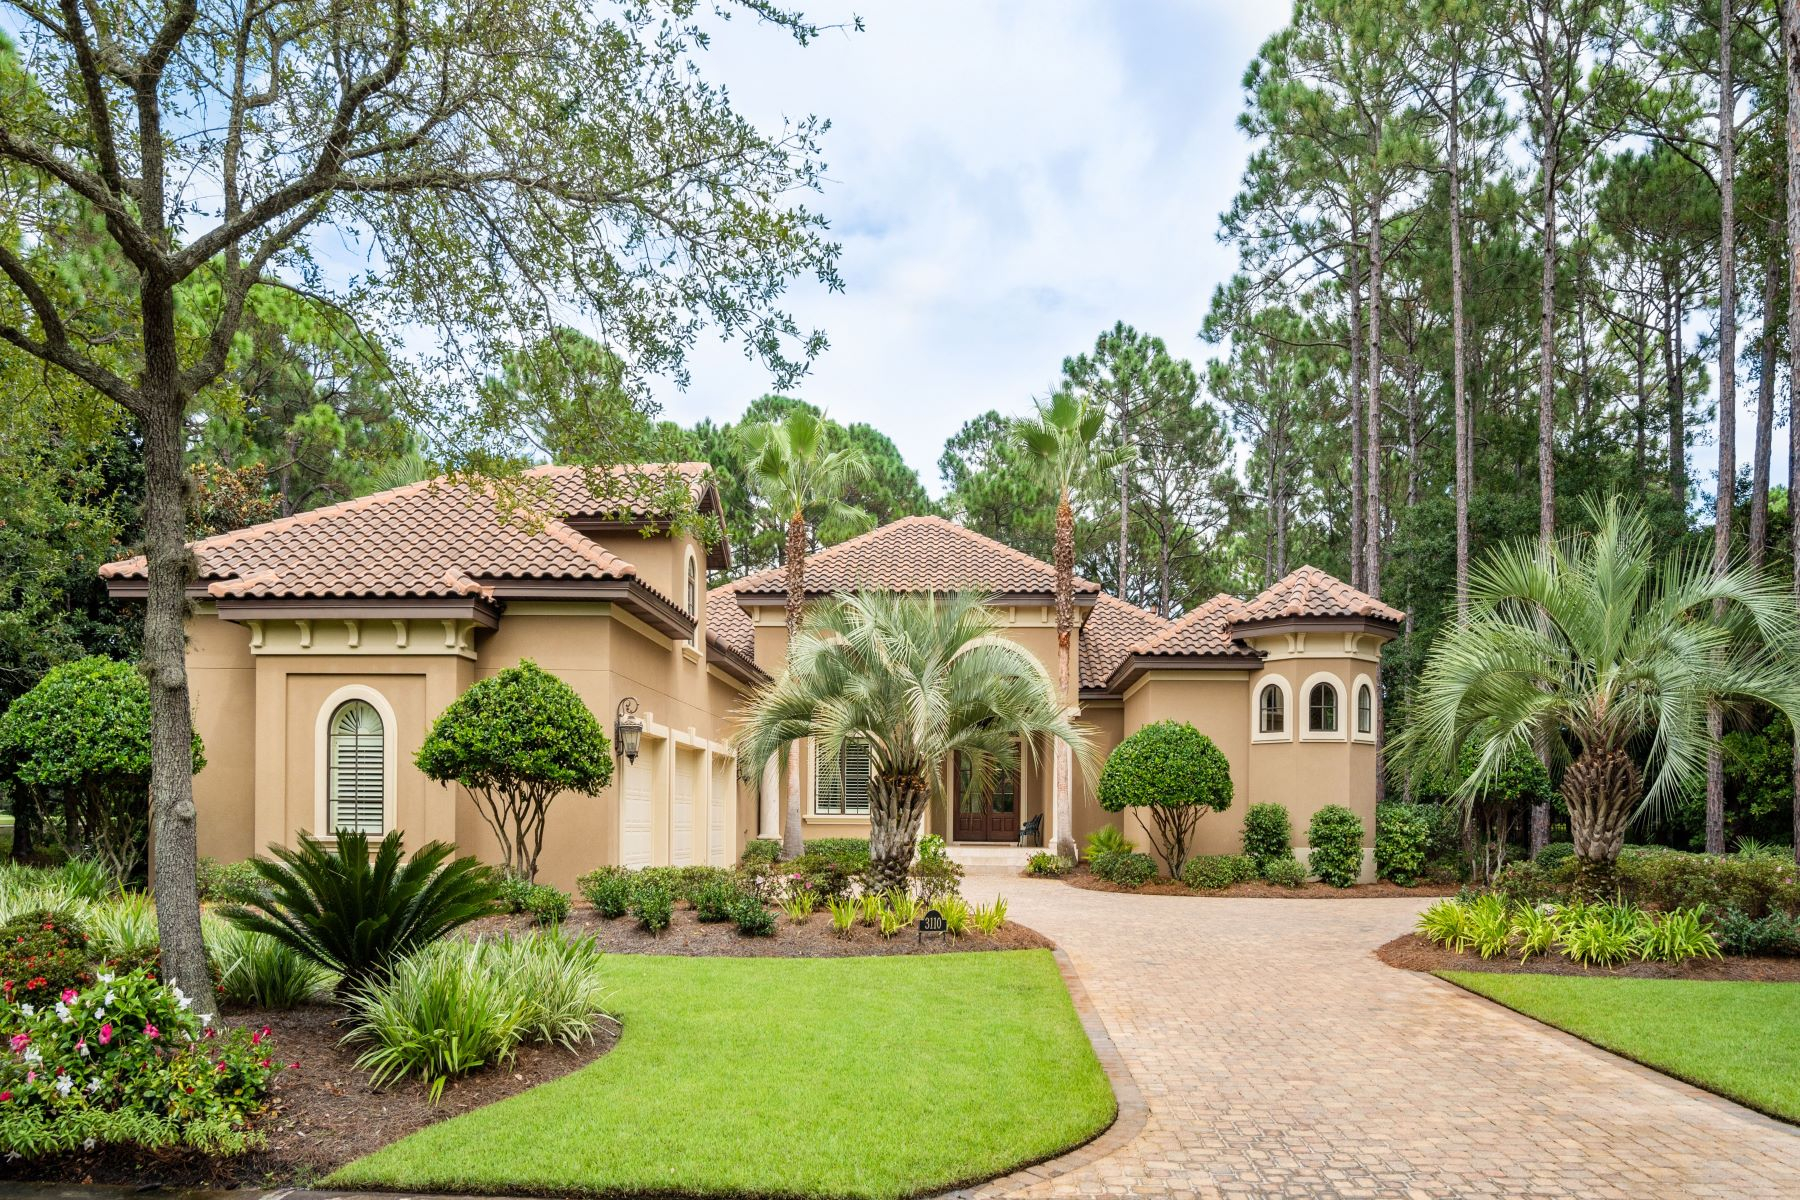 Single Family Homes for Active at Prestigous Two-Story Estate Overlooking Golf Course 3110 Merion Drive Miramar Beach, Florida 32550 United States